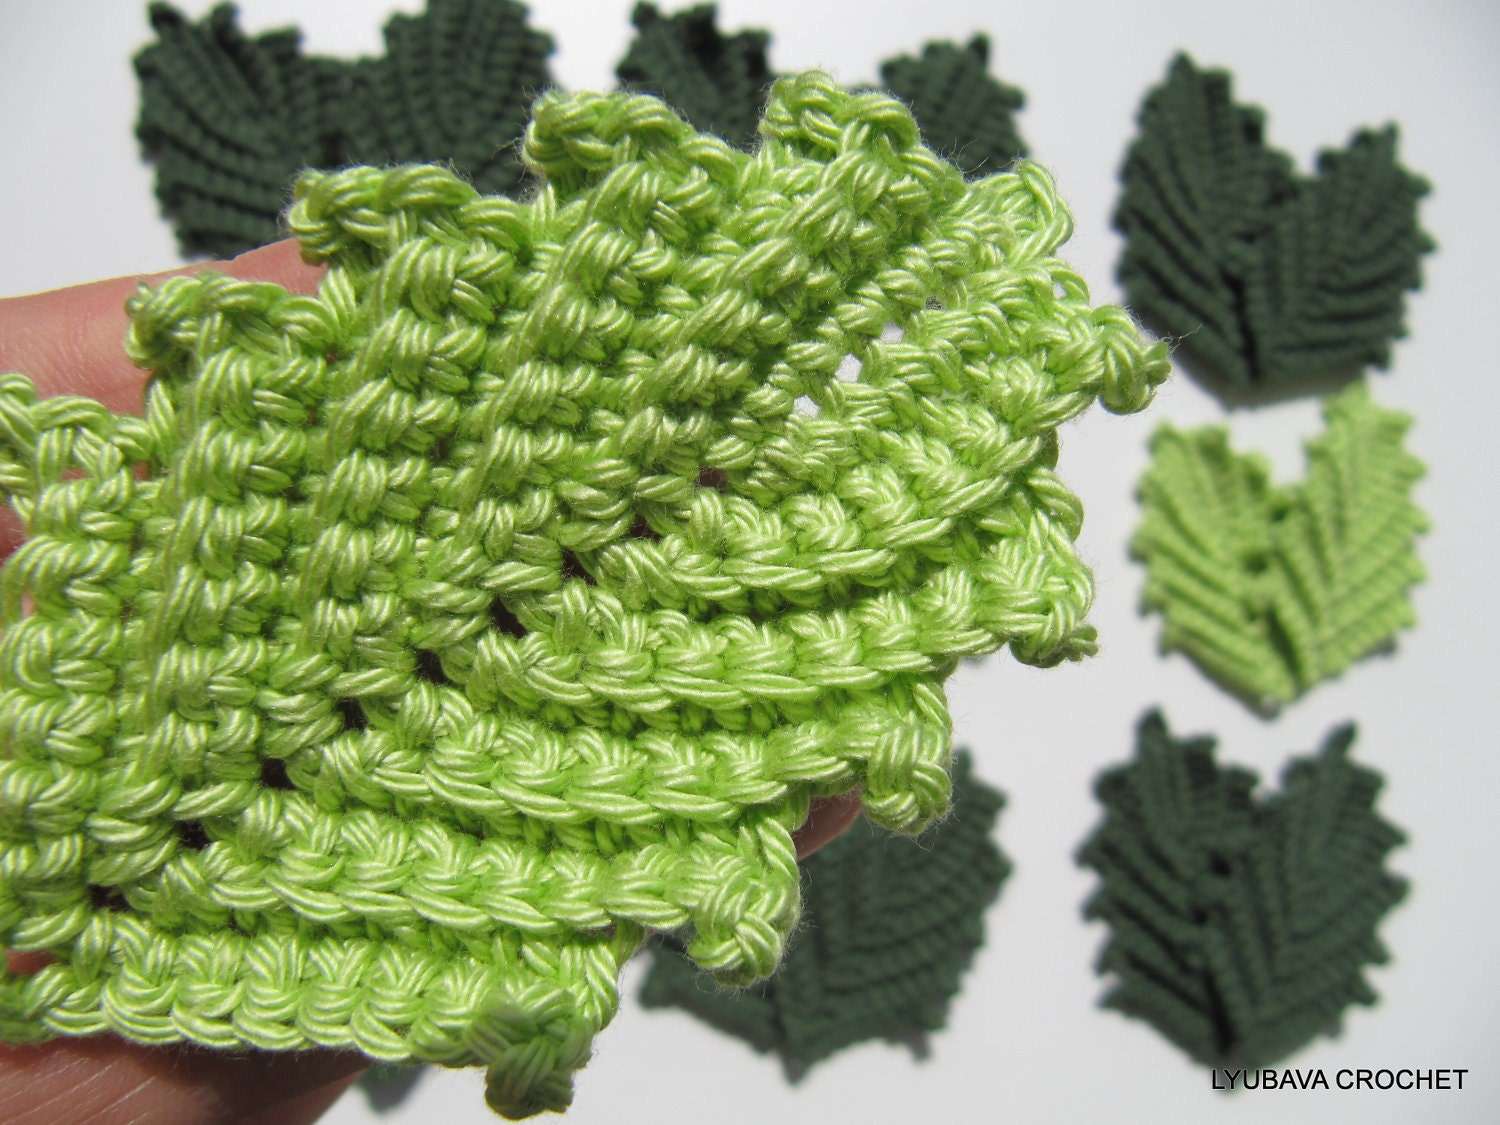 Crocheting Leaves : CROCHET PATTERN Crochet Leaf Pattern Crochet by LyubavaCrochet